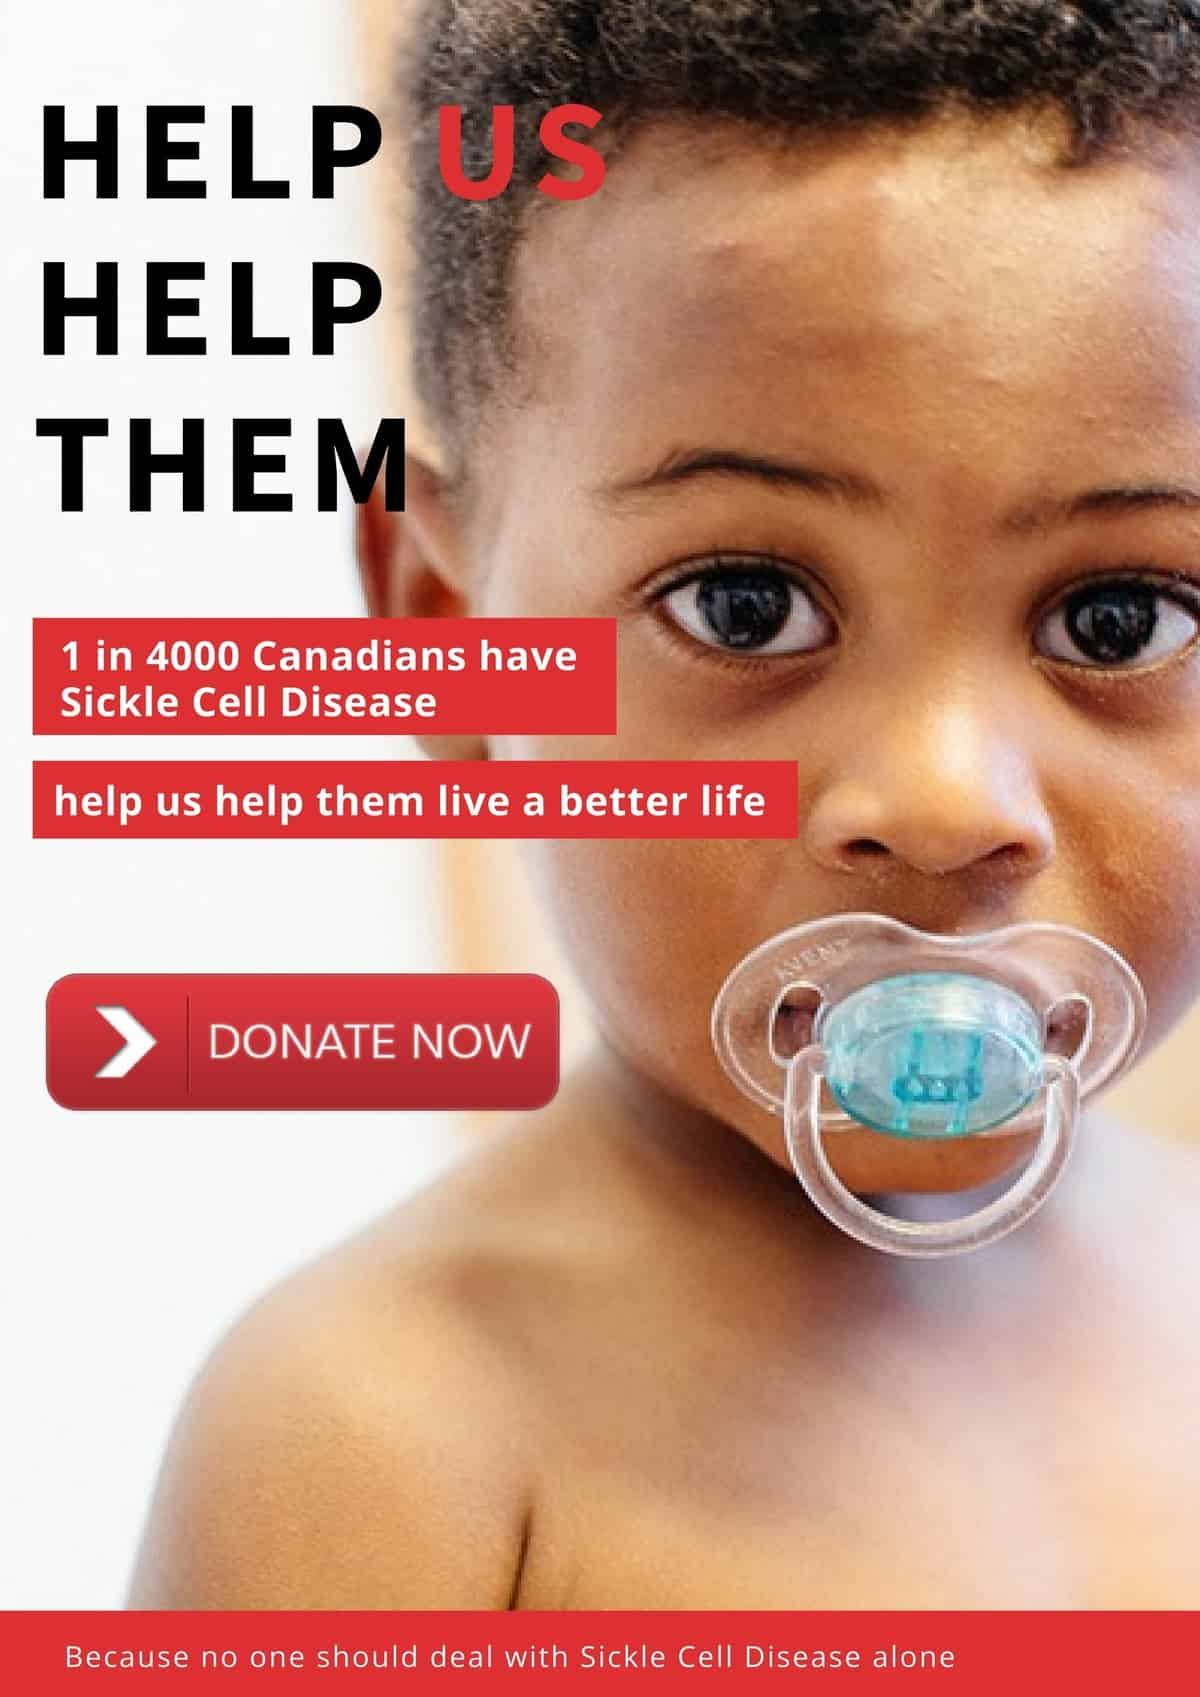 Help Us Help Them, Donate Now